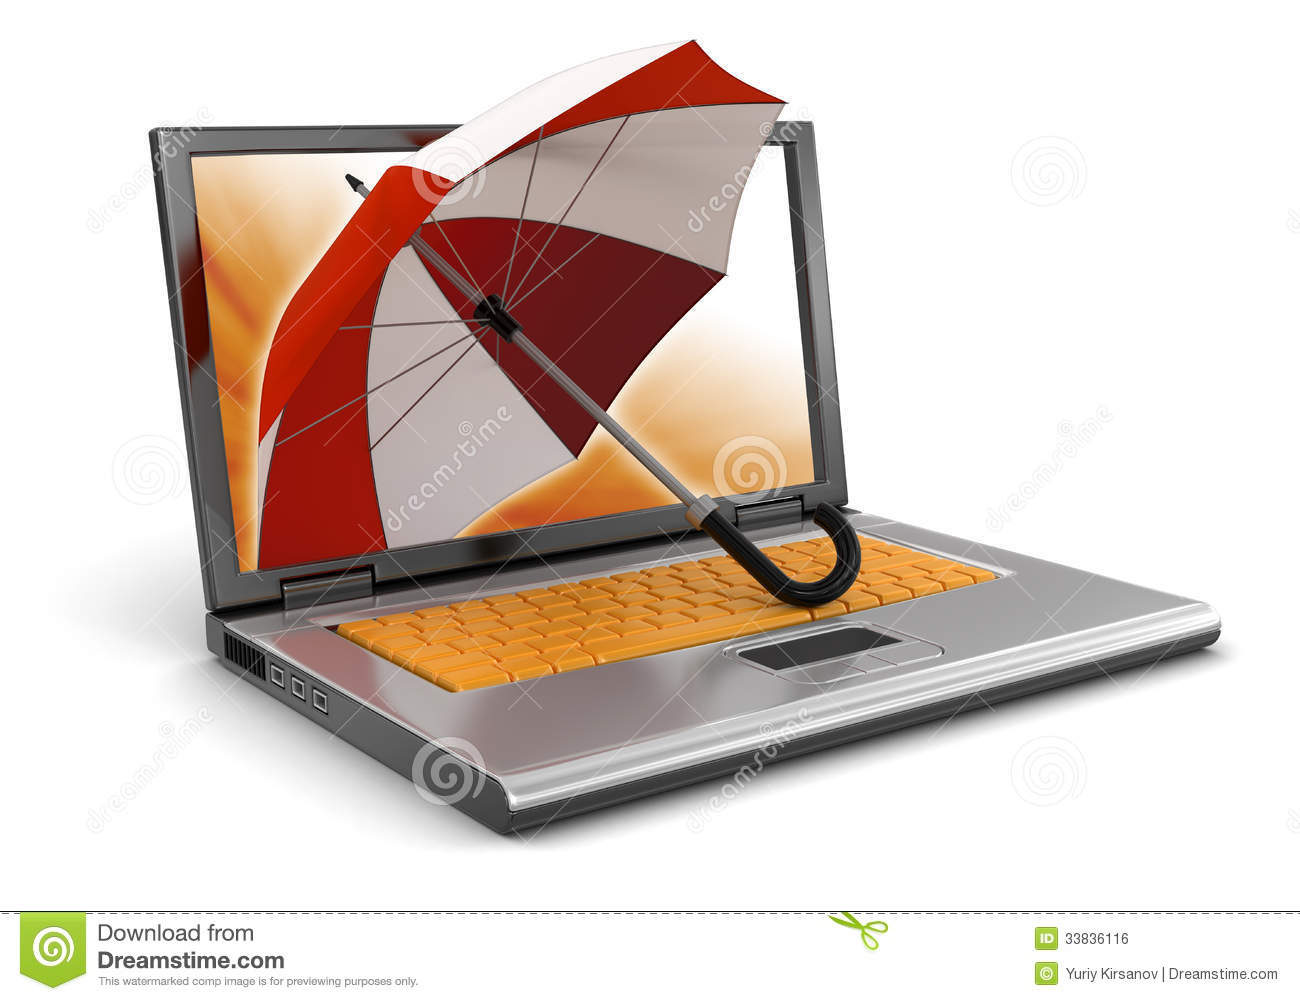 Laptop And Umbrella Clipping Path Included Royalty Free